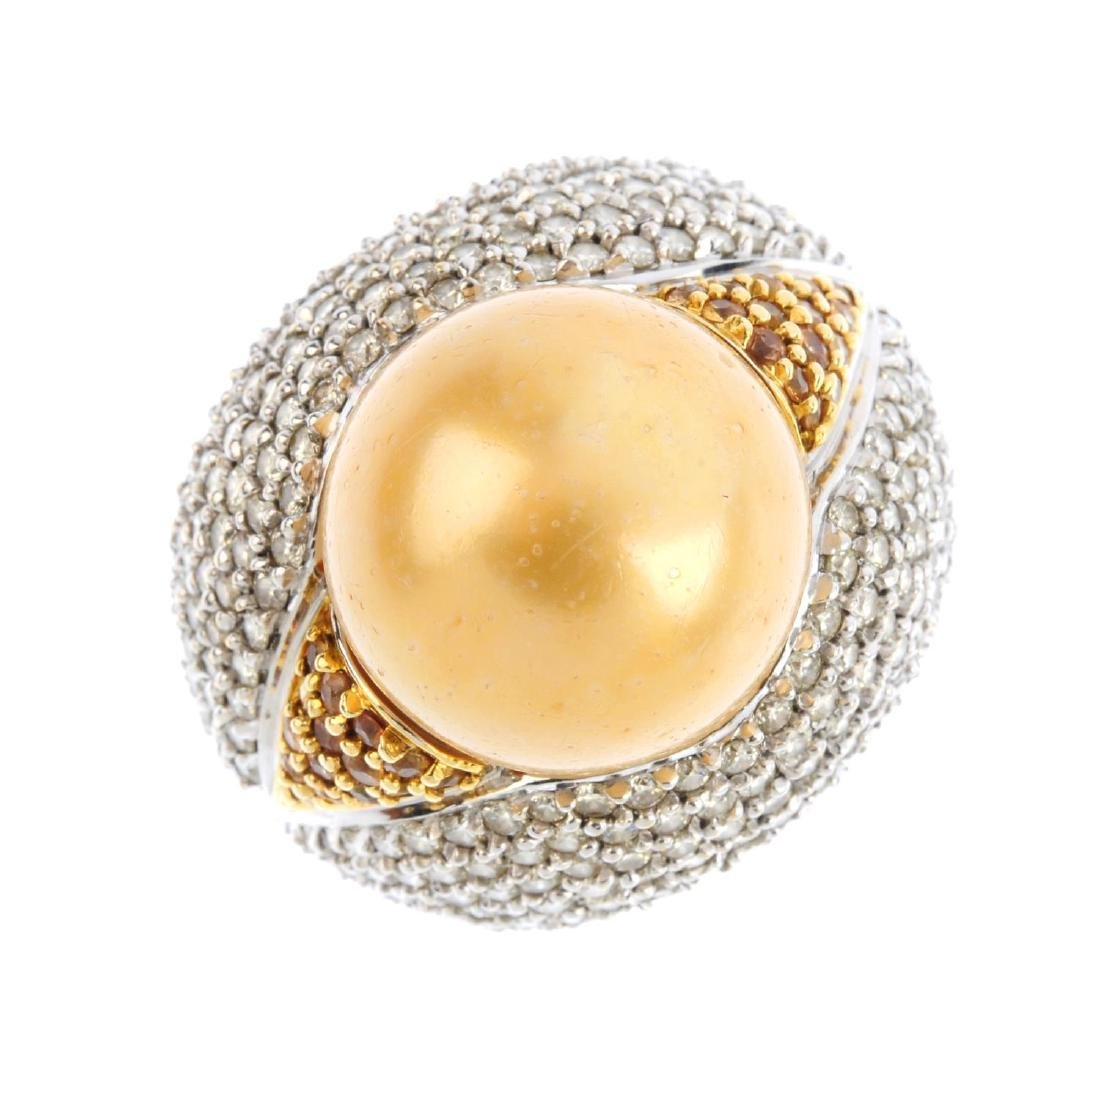 A dyed cultured pearl and diamond dress ring. The dyed